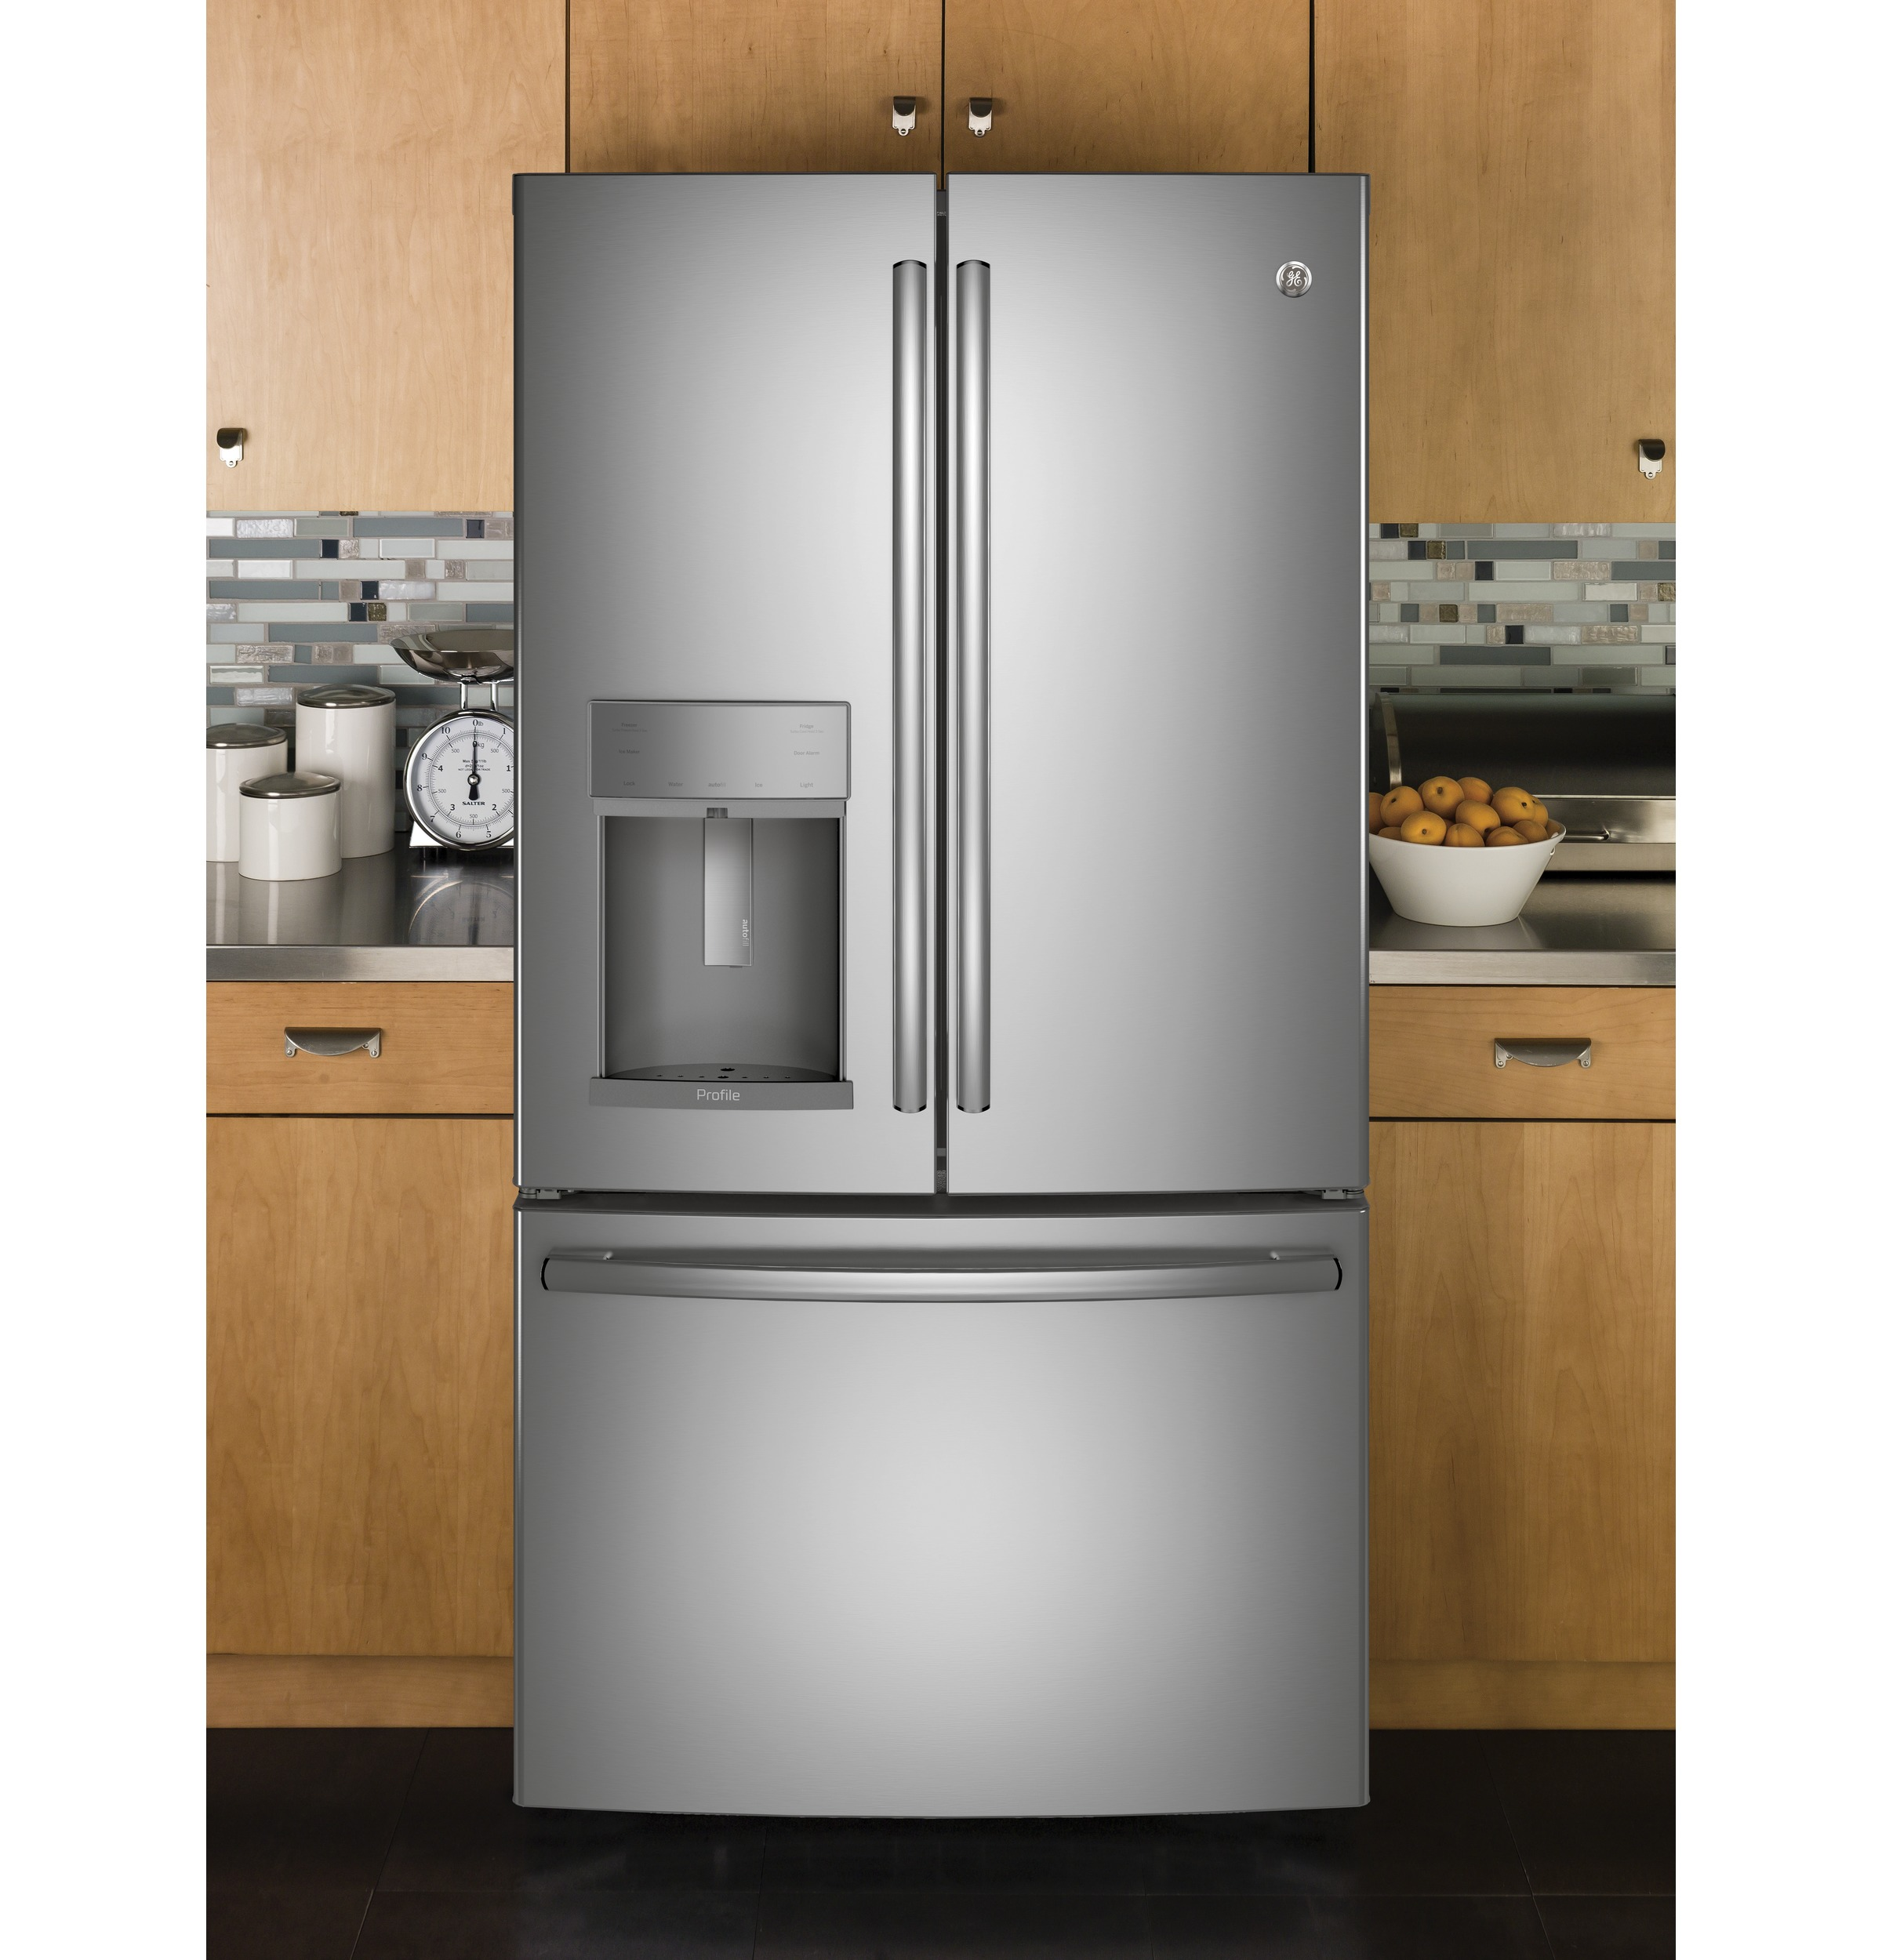 Model: PFE28KSKSS | GE Profile GE Profile™ Series ENERGY STAR® 27.8 Cu. Ft. French-Door Refrigerator with Hands-Free AutoFill